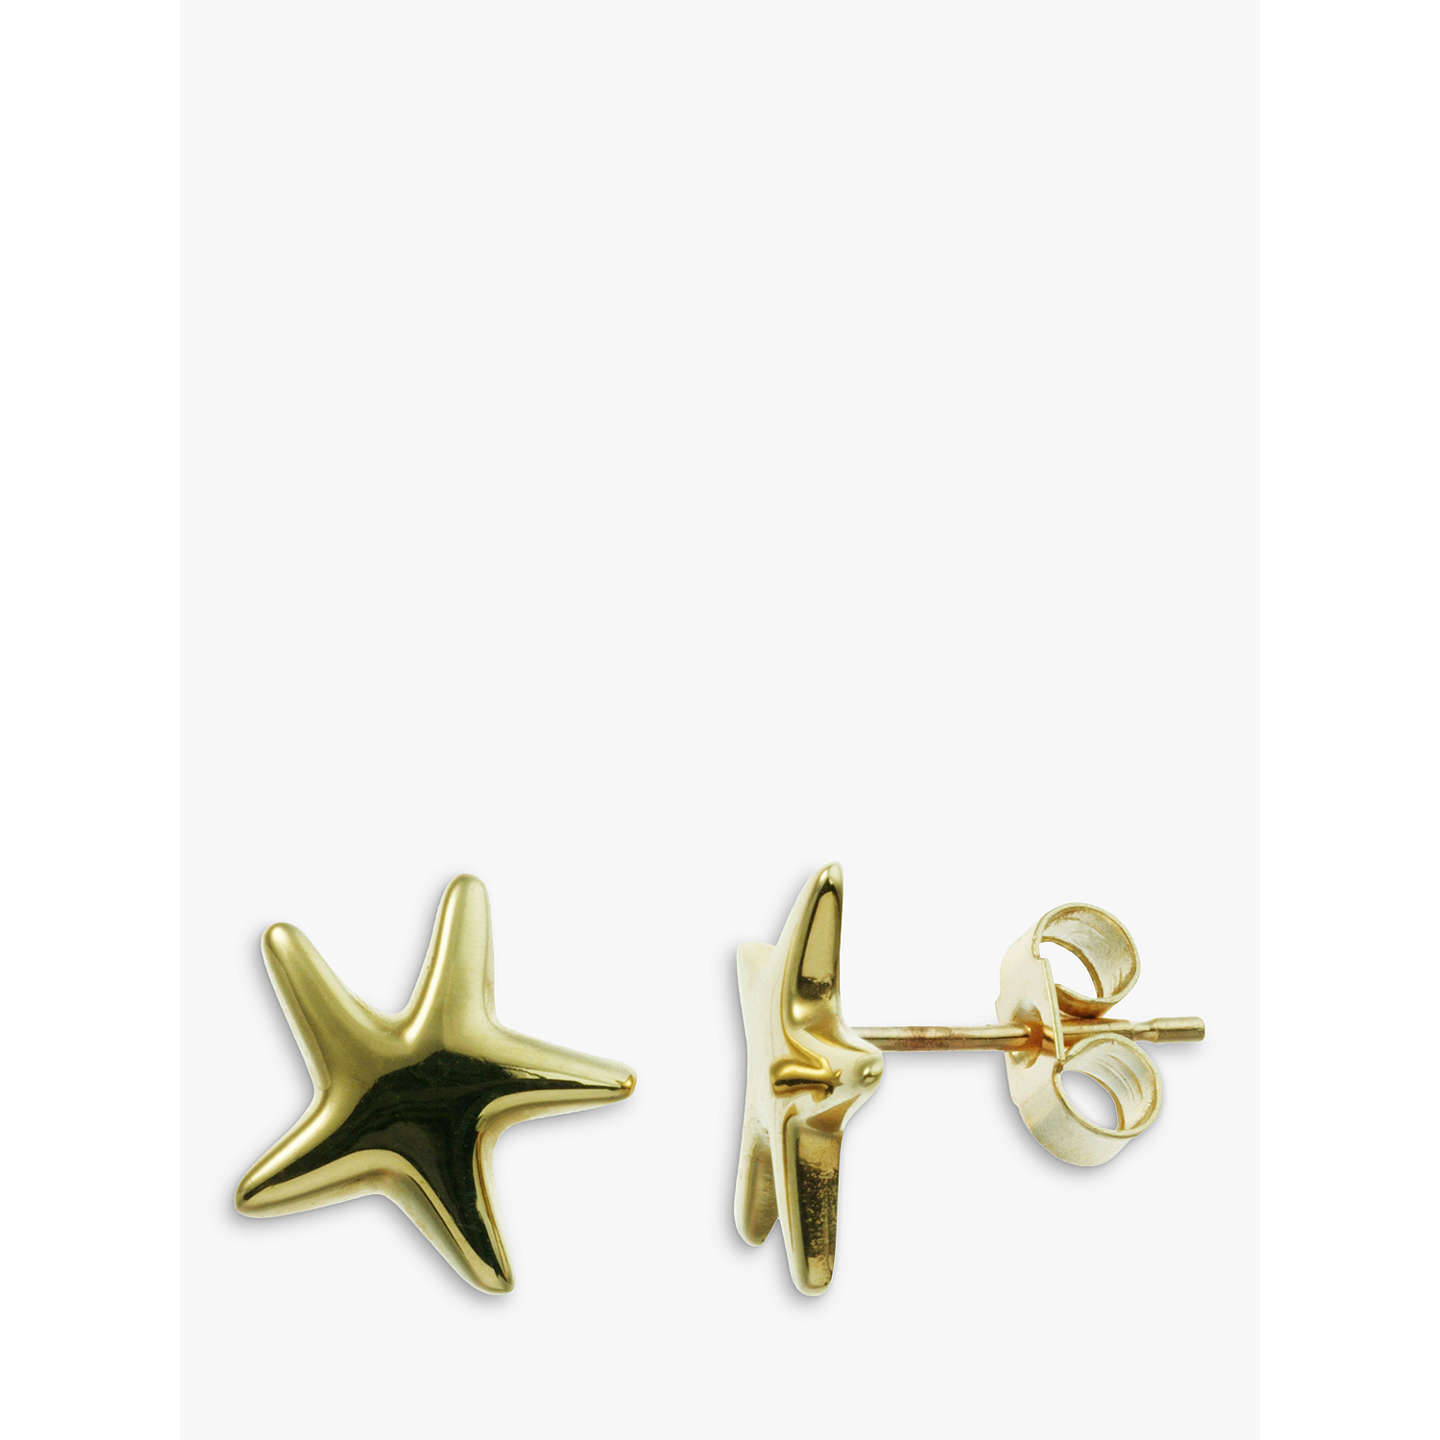 stylish starfish kandsimpressions a sterling stud pin earrings gift silver are jewelry